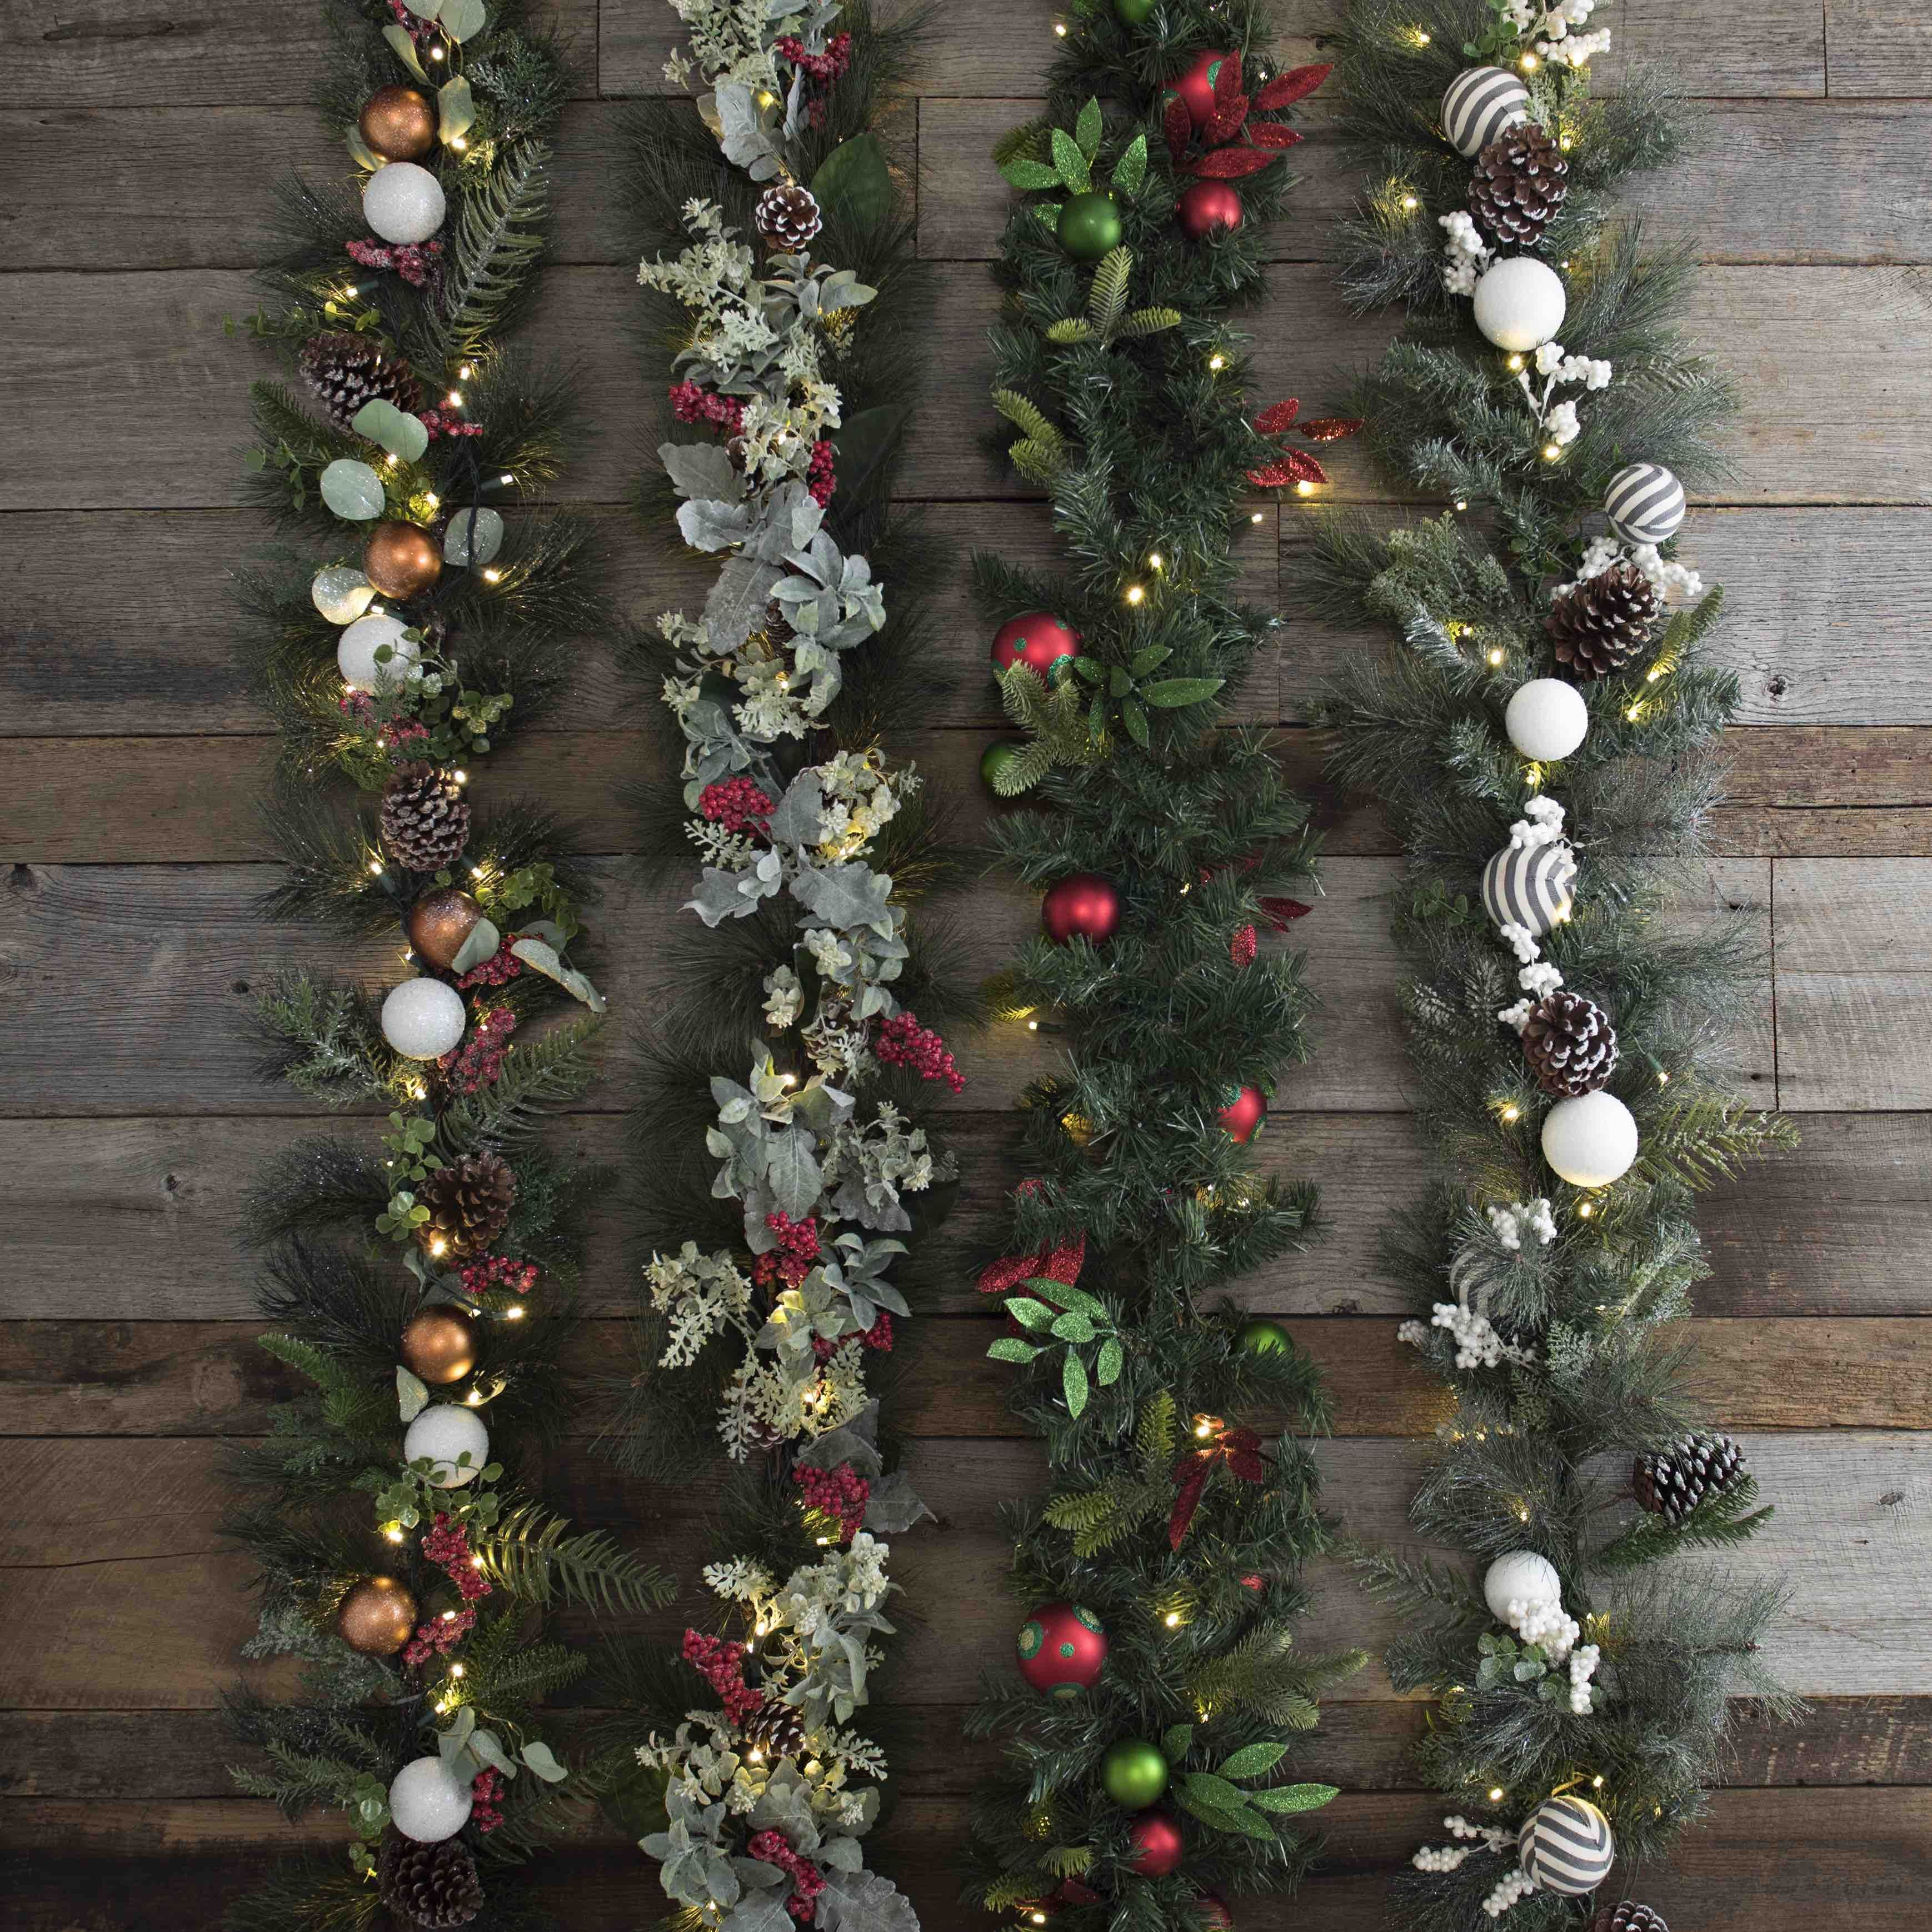 Easy Holiday decorating = pre lit garland